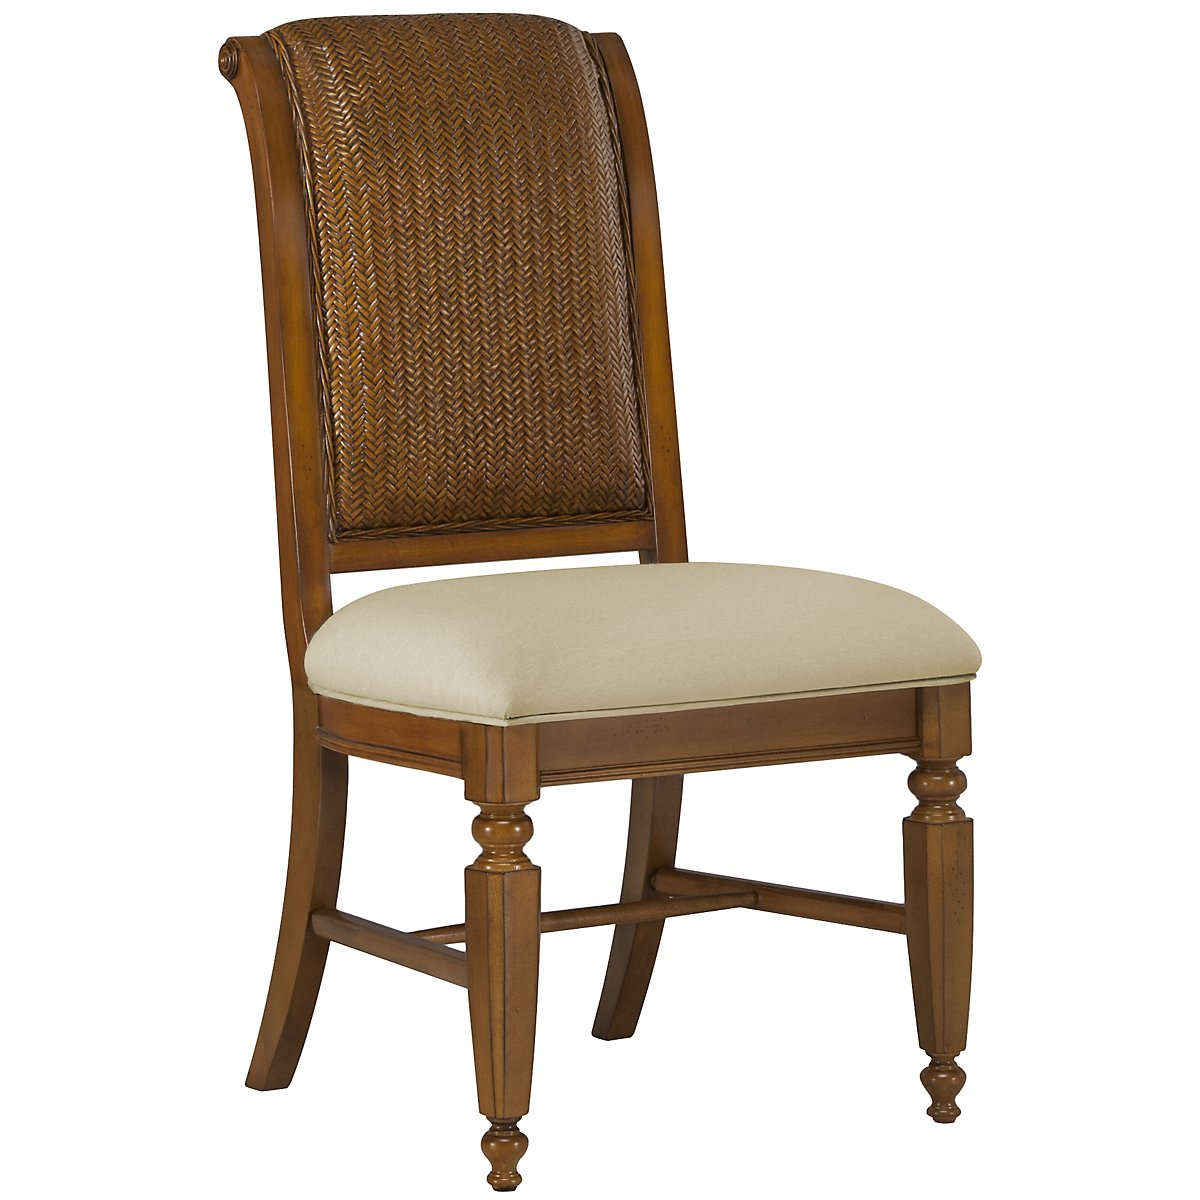 Claire Mid Tone Woven Side Chair